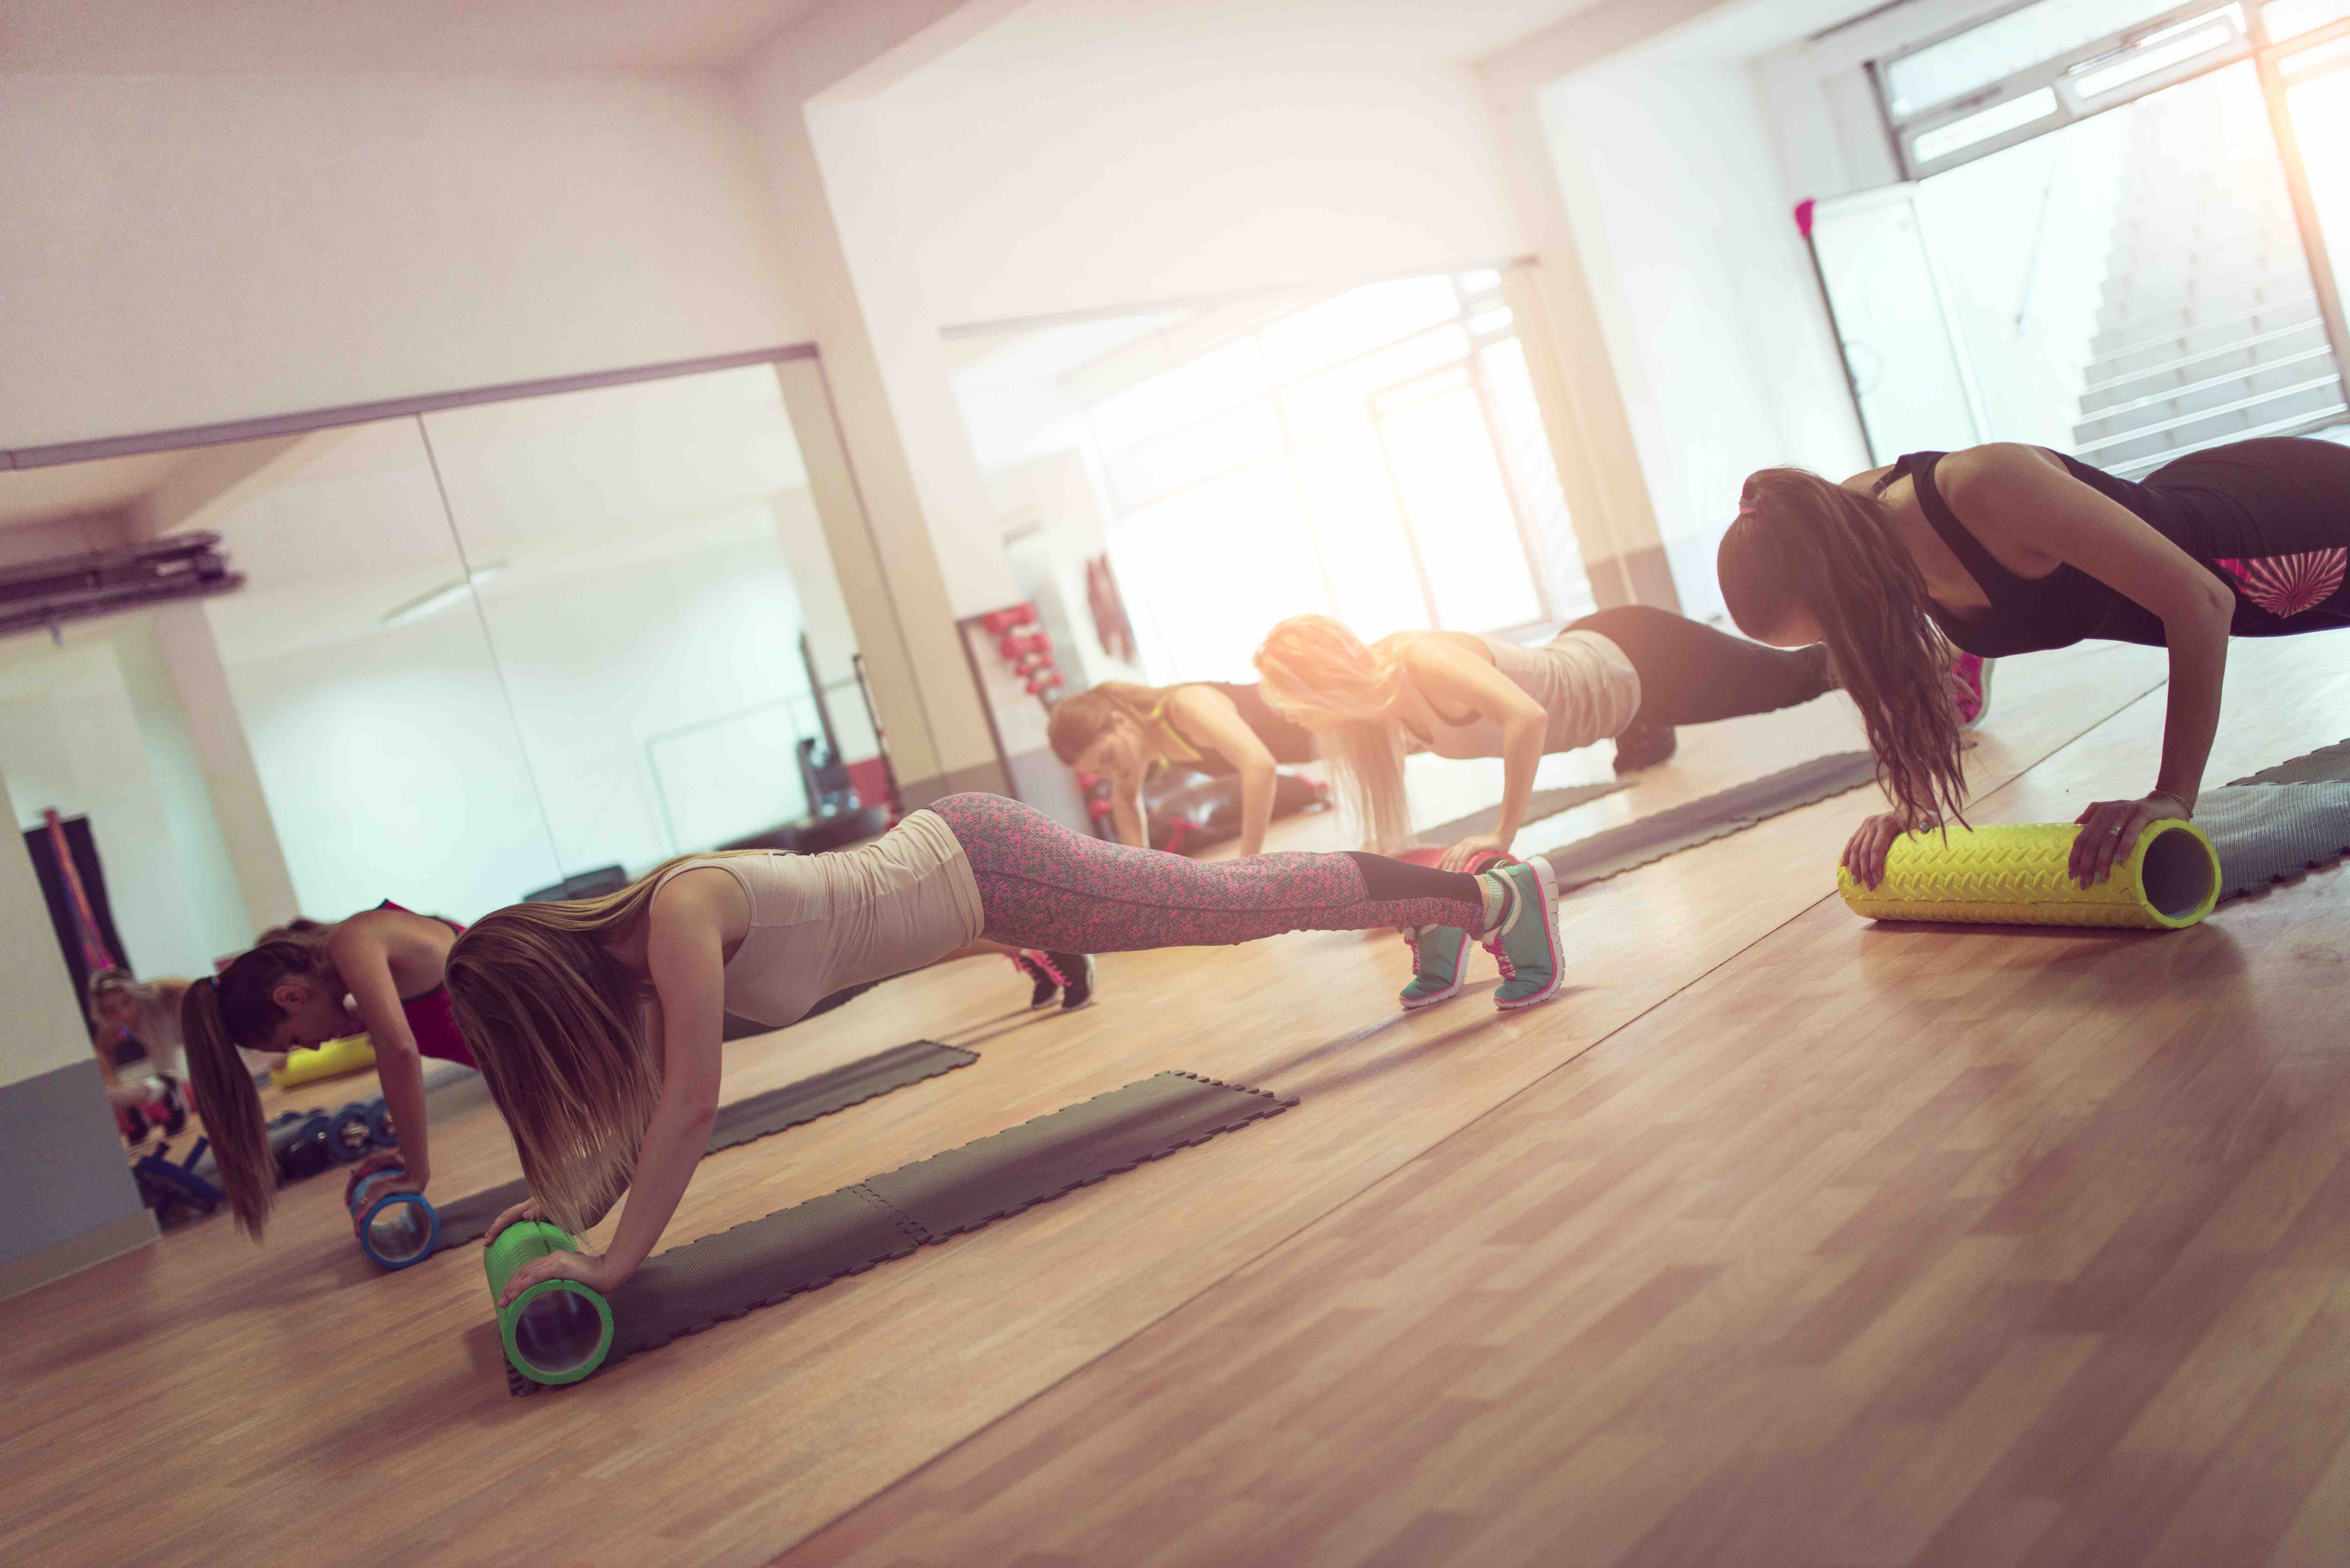 Group of Females how Exercise in the Gym using support Cylindrical shape foam Rollers on the Floor at Aerobics Training.